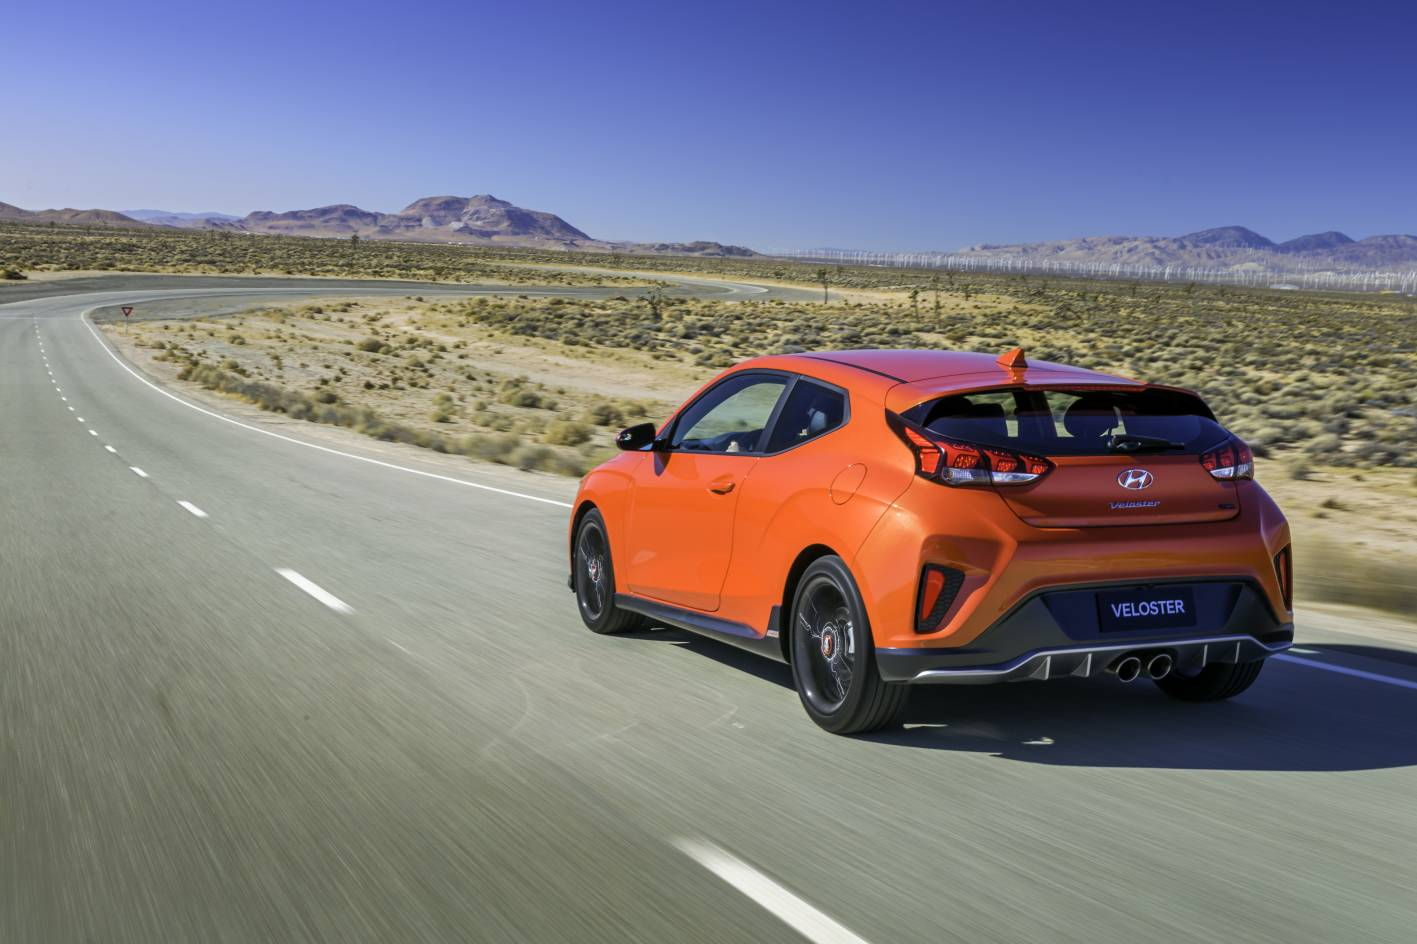 Hyundai Santa Fe 2018 Model >> 2019 Hyundai Veloster and Veloster N officially unveiled - ForceGT.com